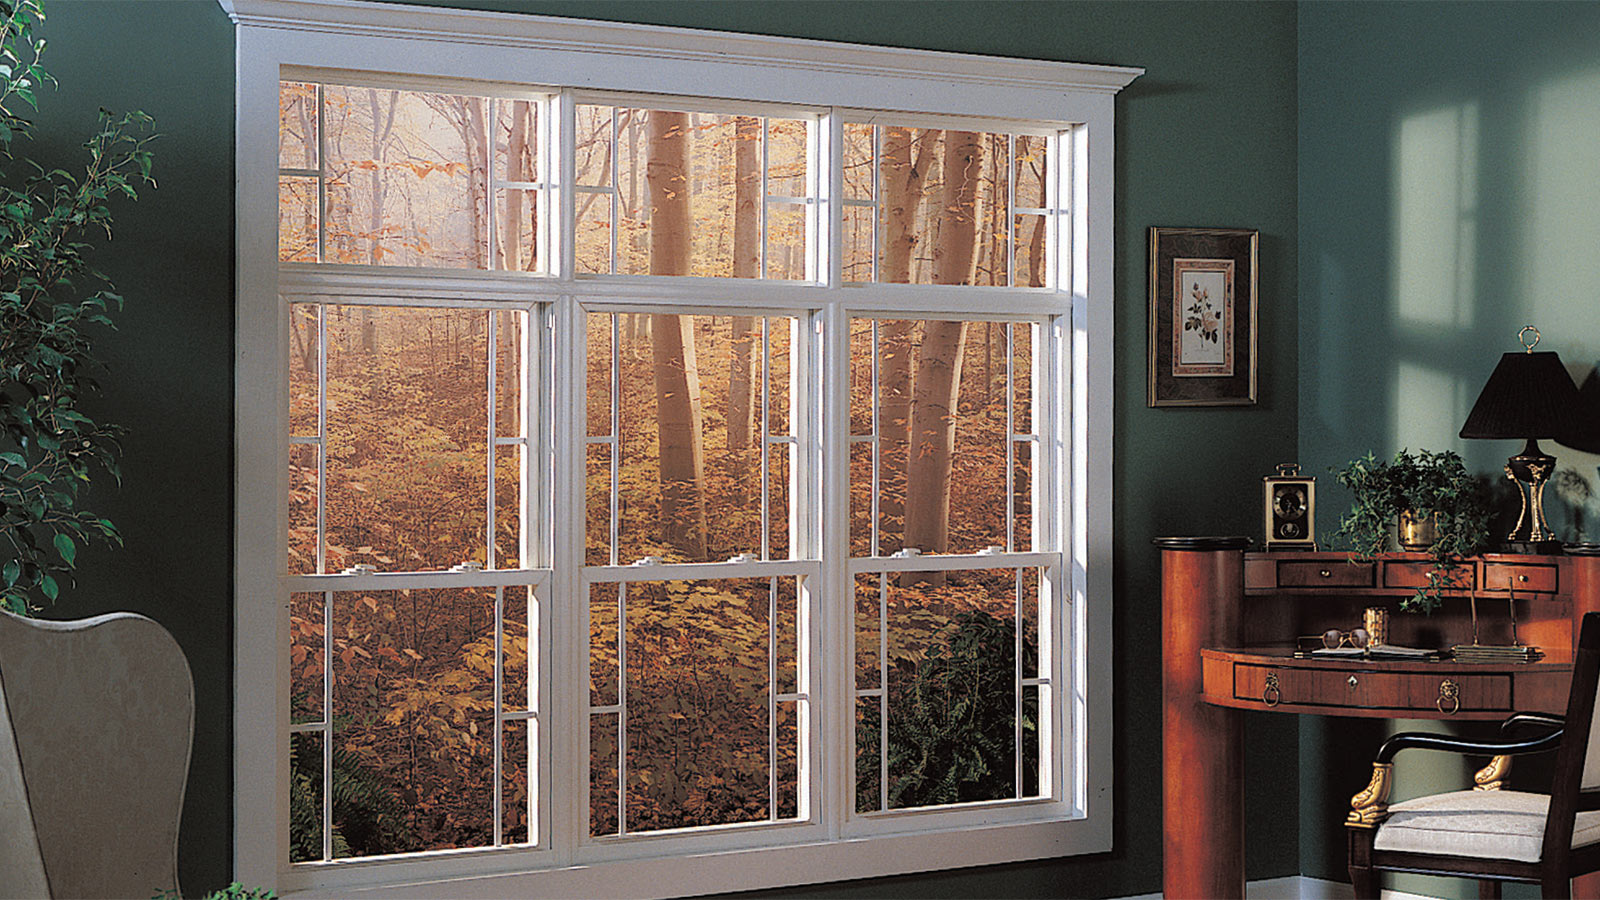 Single hung windows are easier on the budget because the top sash does not move.